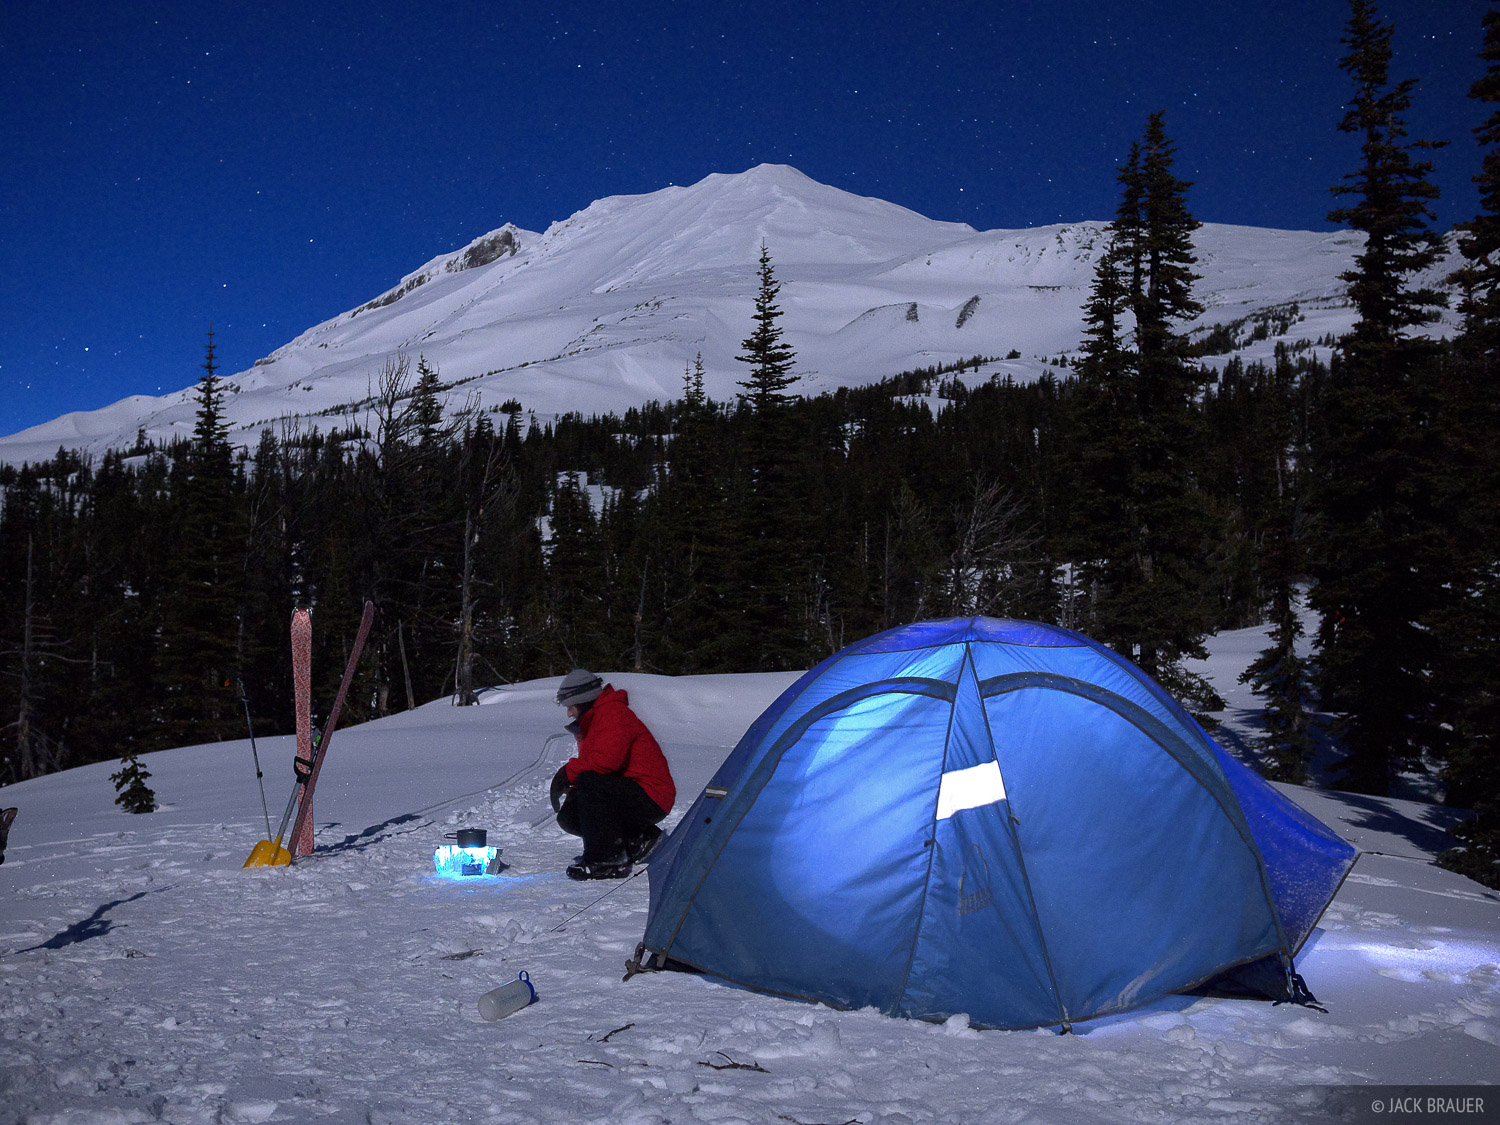 Mt. Adams, Washington, moonlight, tent, Mount Adams, photo